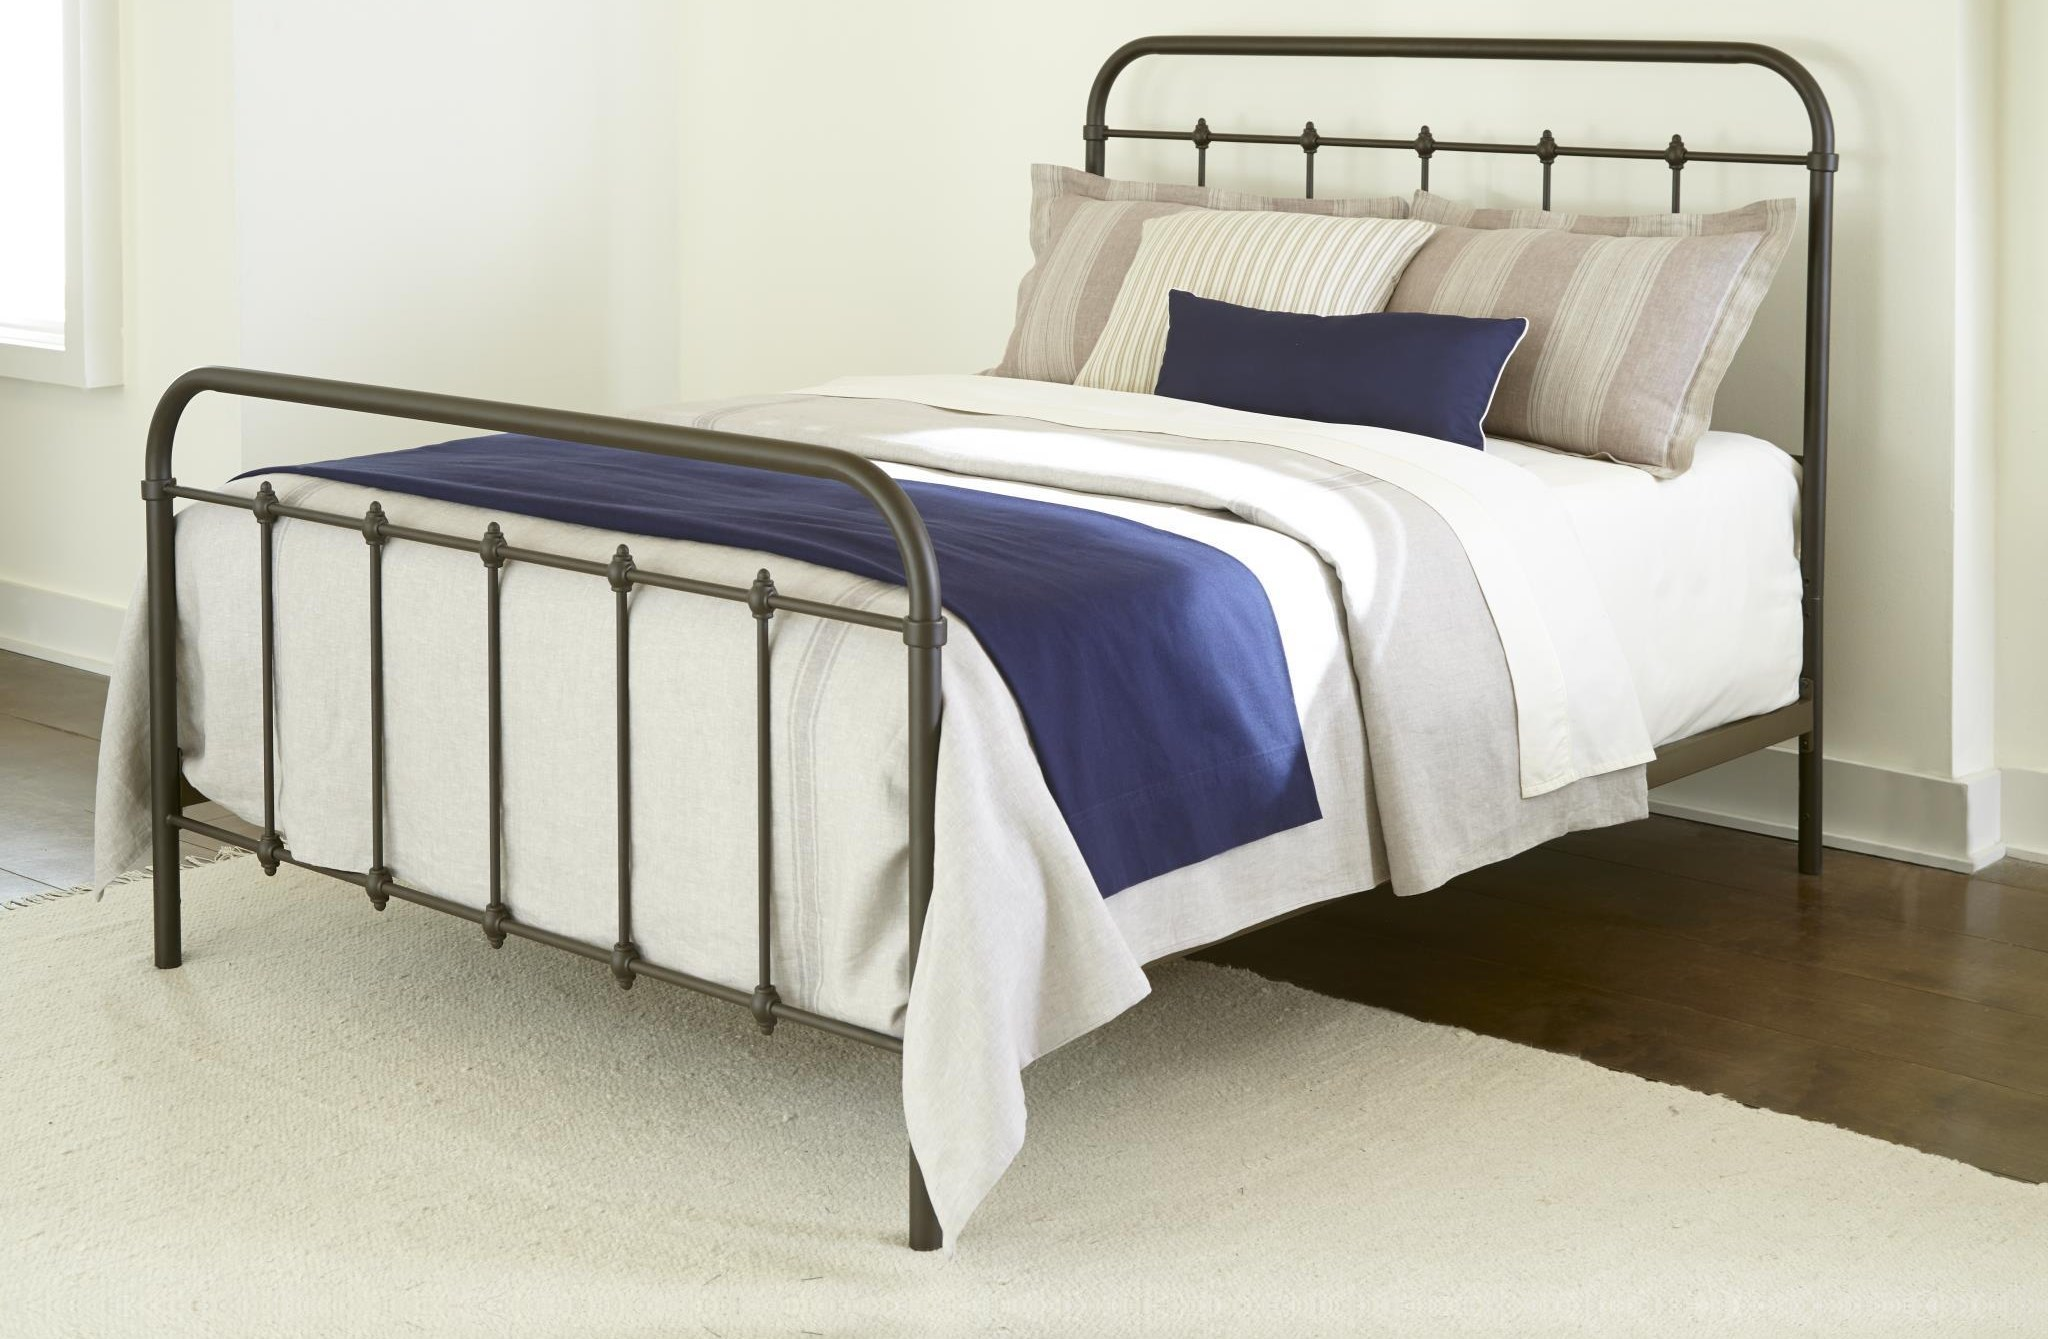 Queen Size Metal Bed